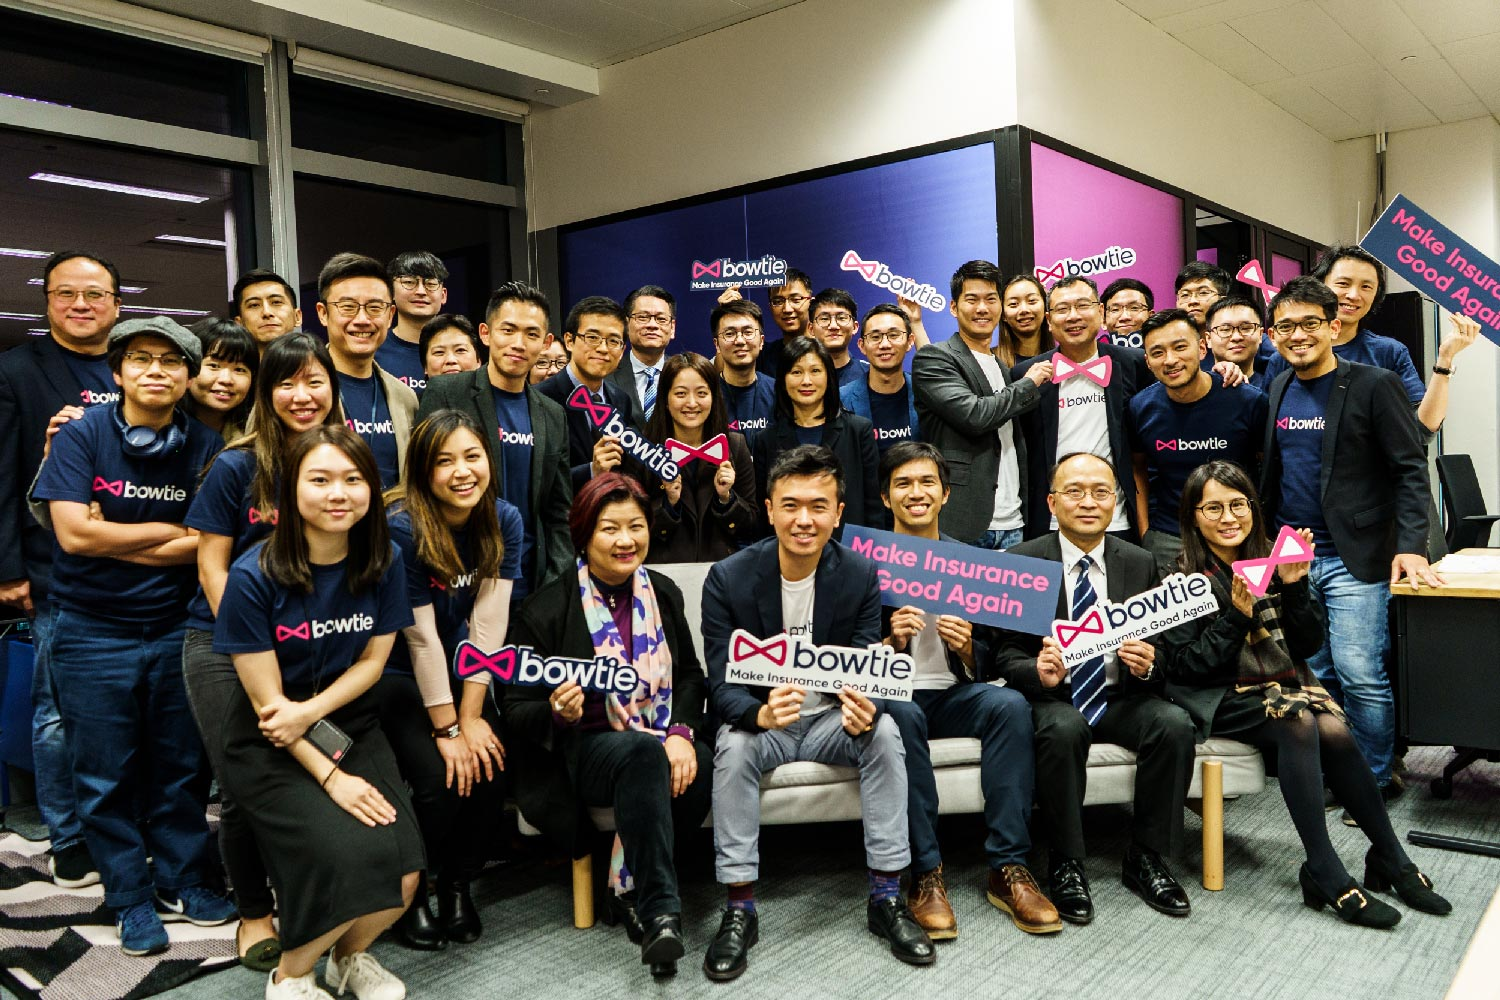 Hong Kong's first licensed digital insurer Bowtie raises $30m